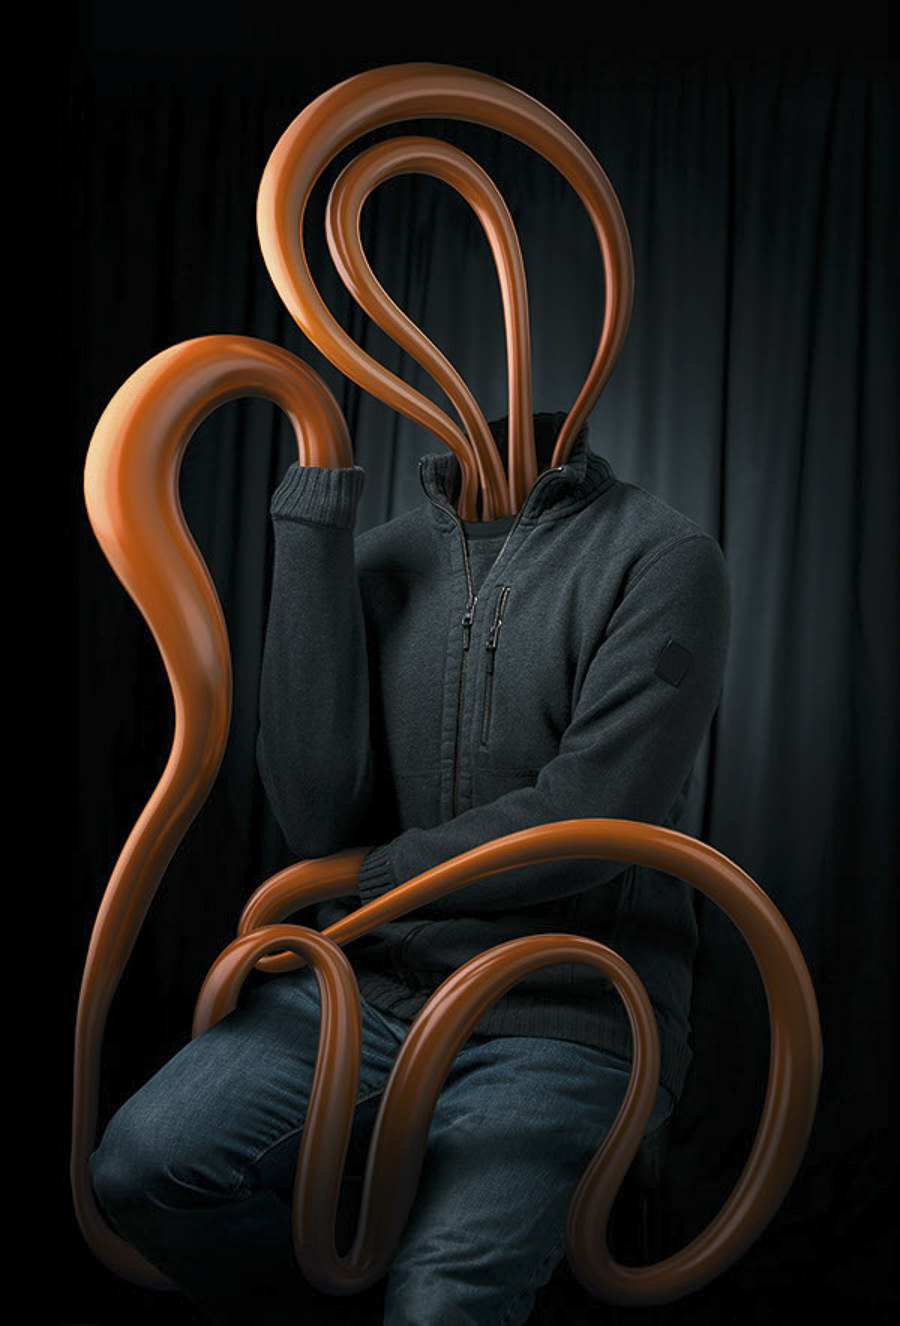 Living Sculptures 2 by Mike Campau